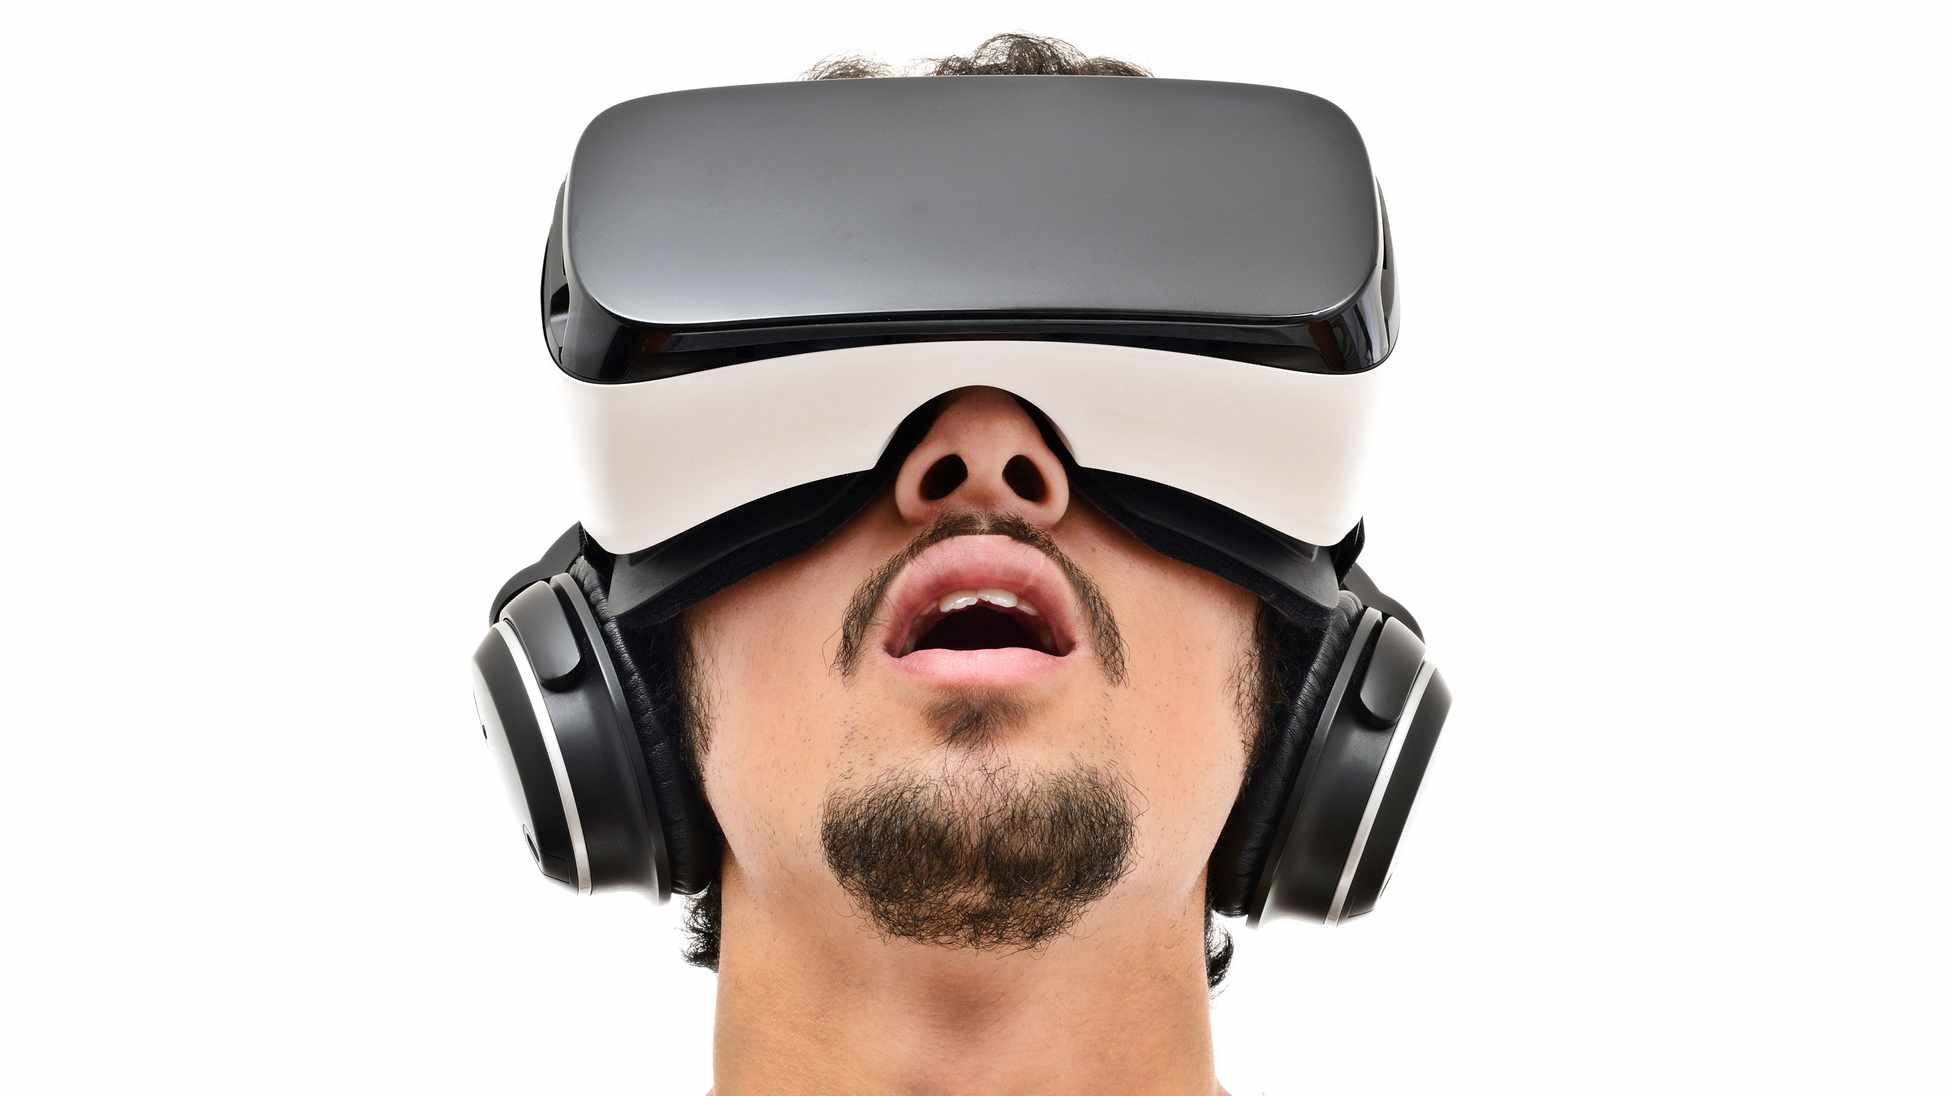 Buyer's guide: 16 of the best VR headsets © Getty Images